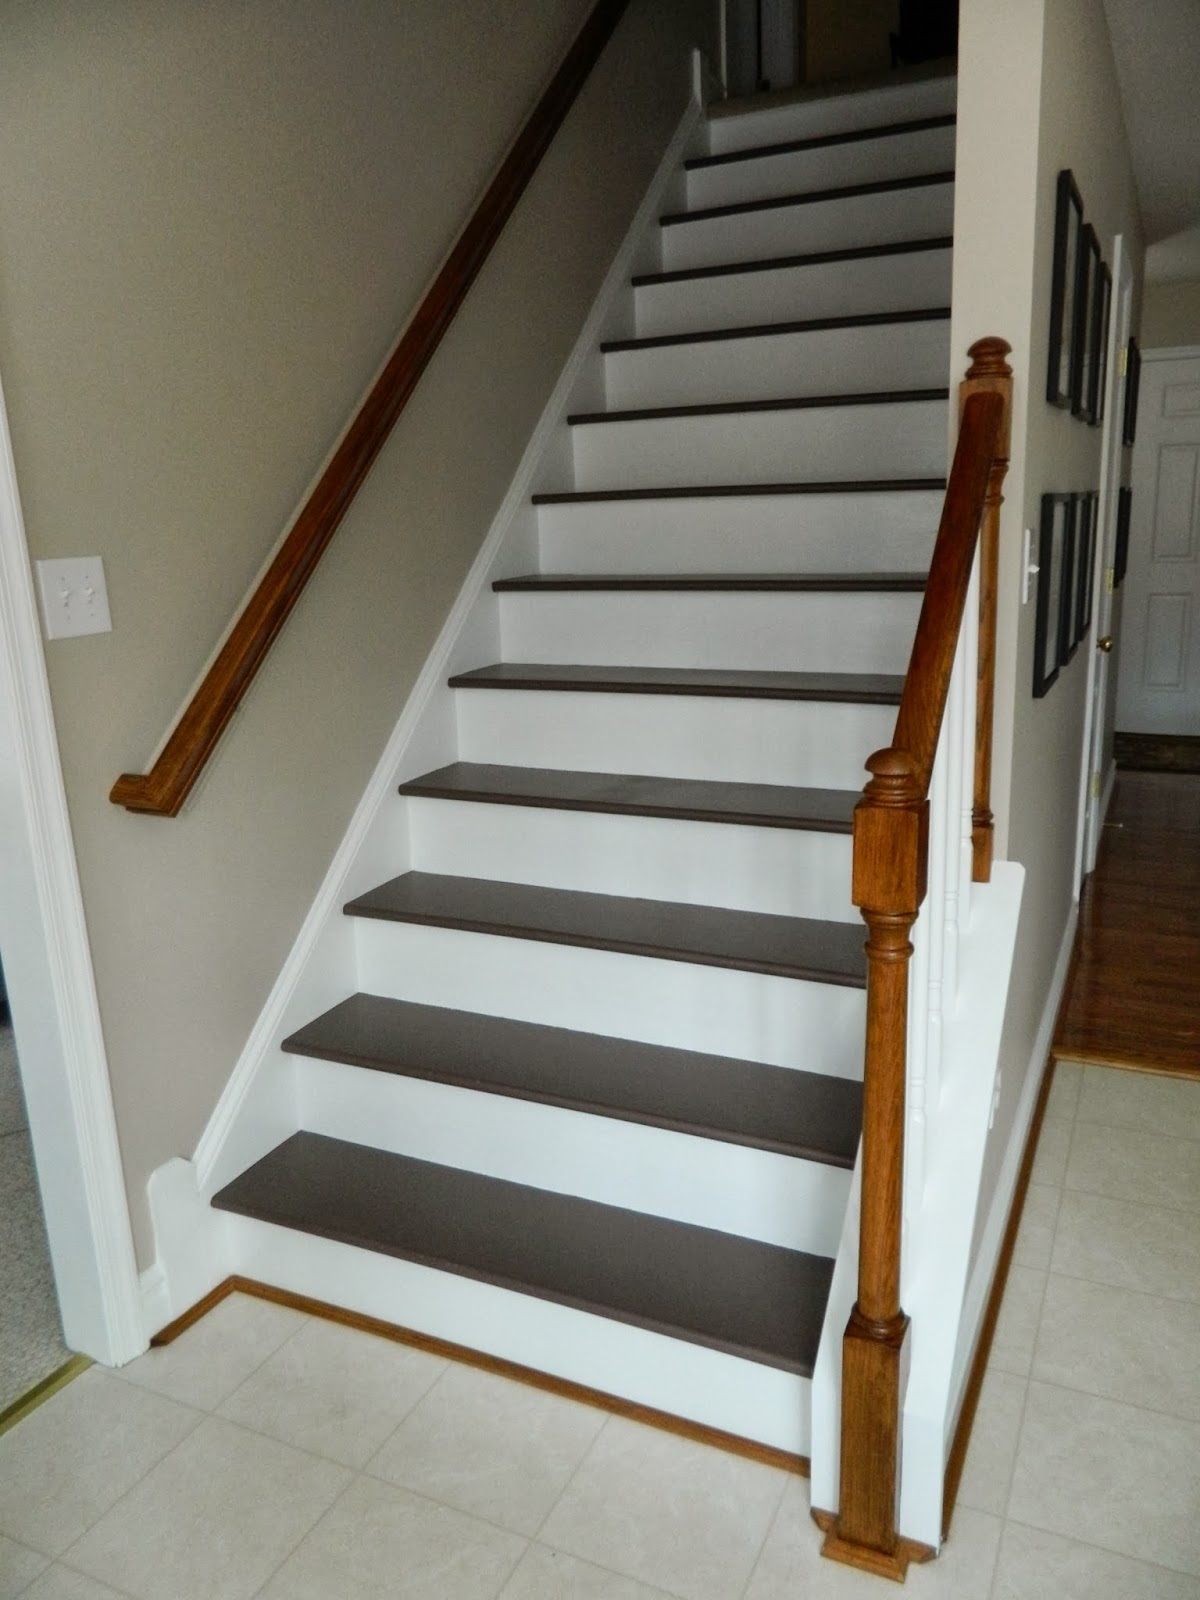 Paint those builder-grade stairs that you have under your carpet and never look back! TheChicDream